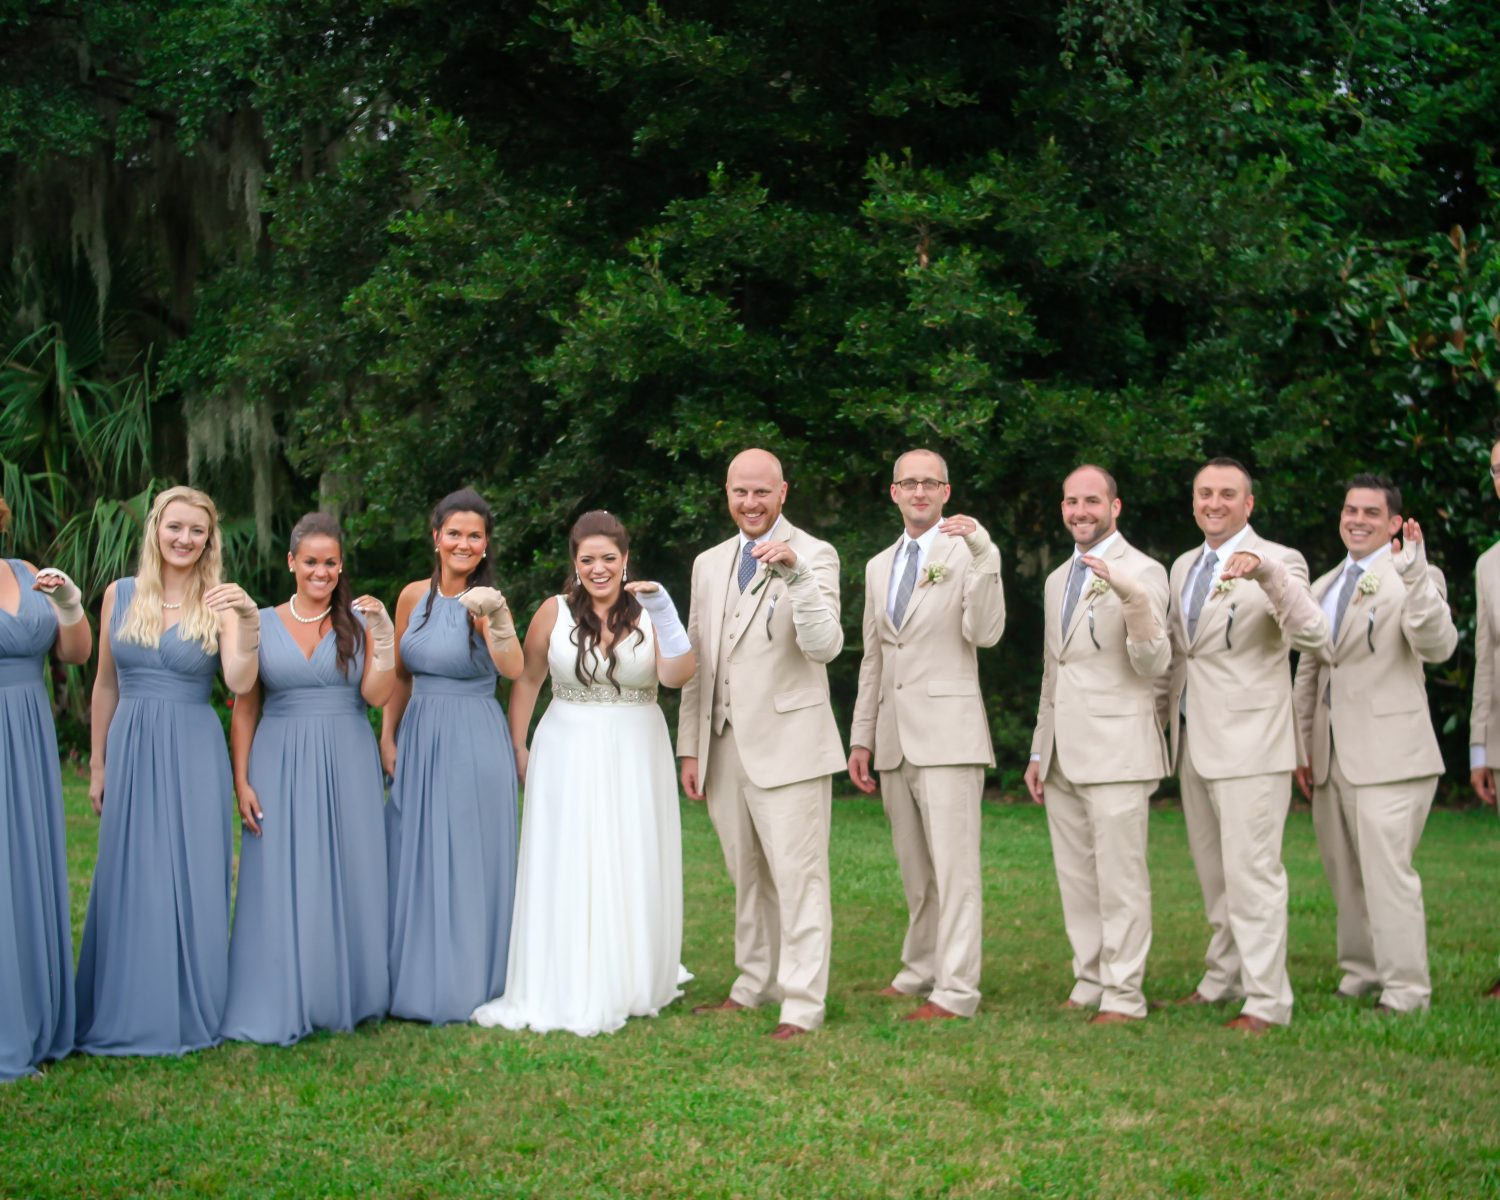 Bridal Party Poses In Bandages After Bride Breaks Wrist